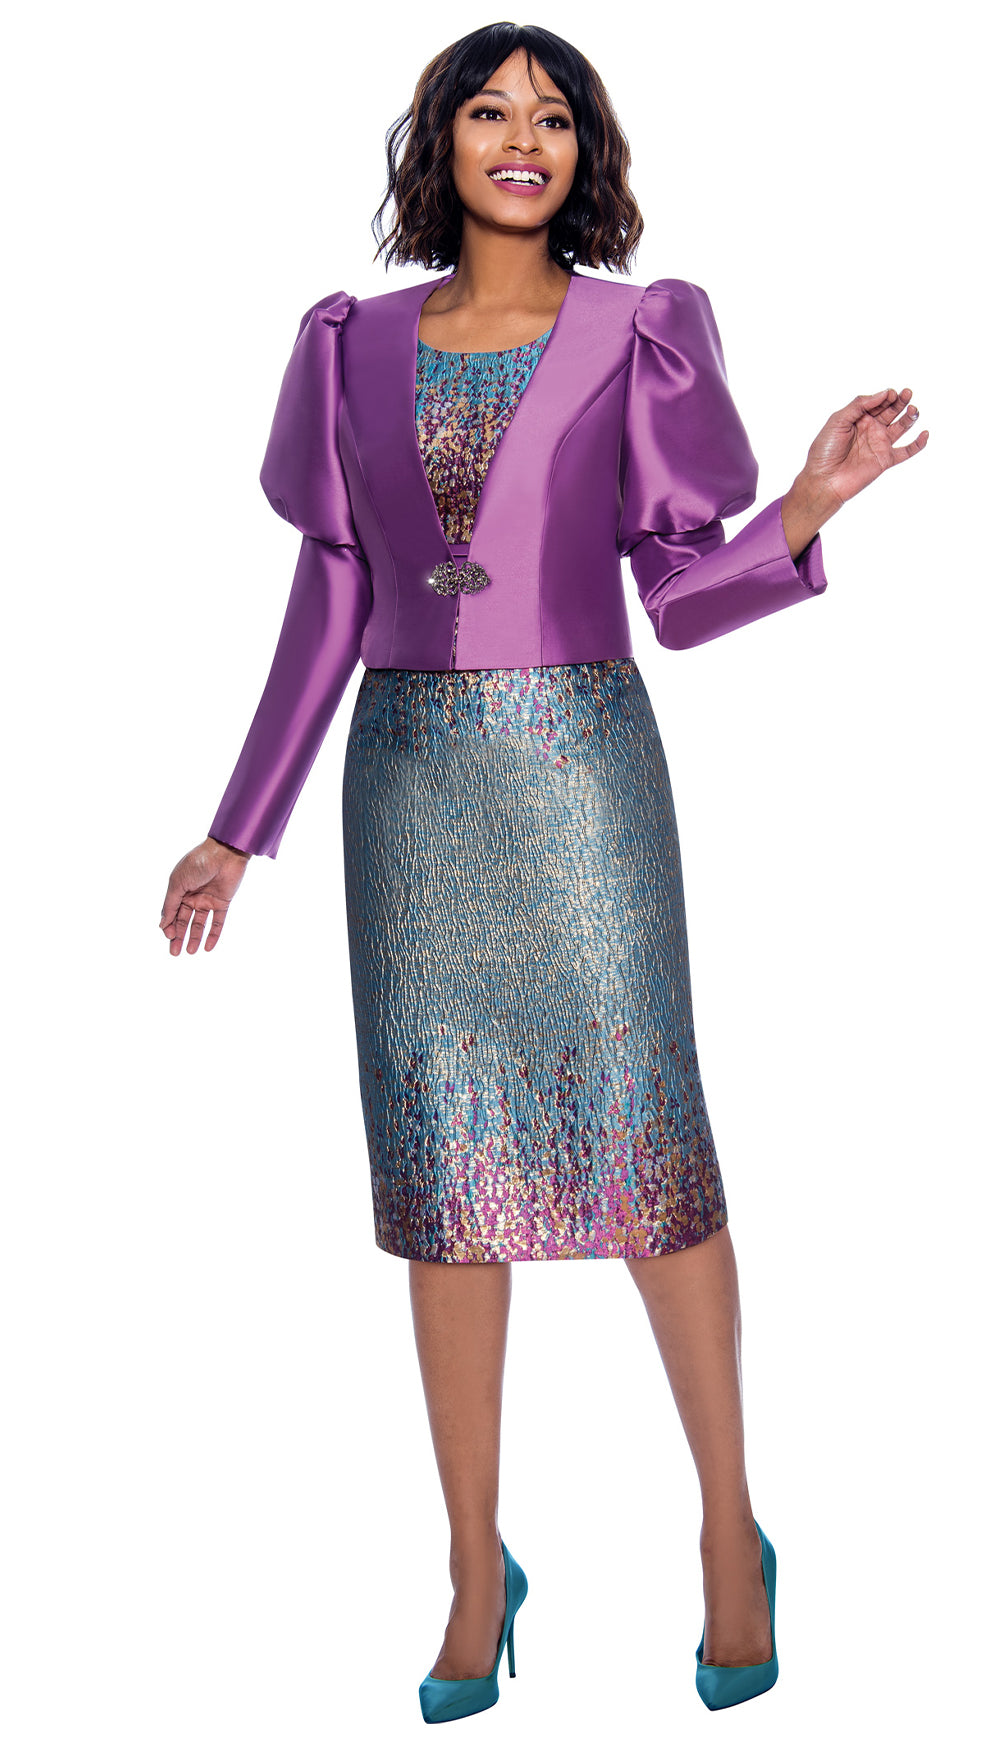 Terramina Jacket Dress 7873 - Church Suits For Less